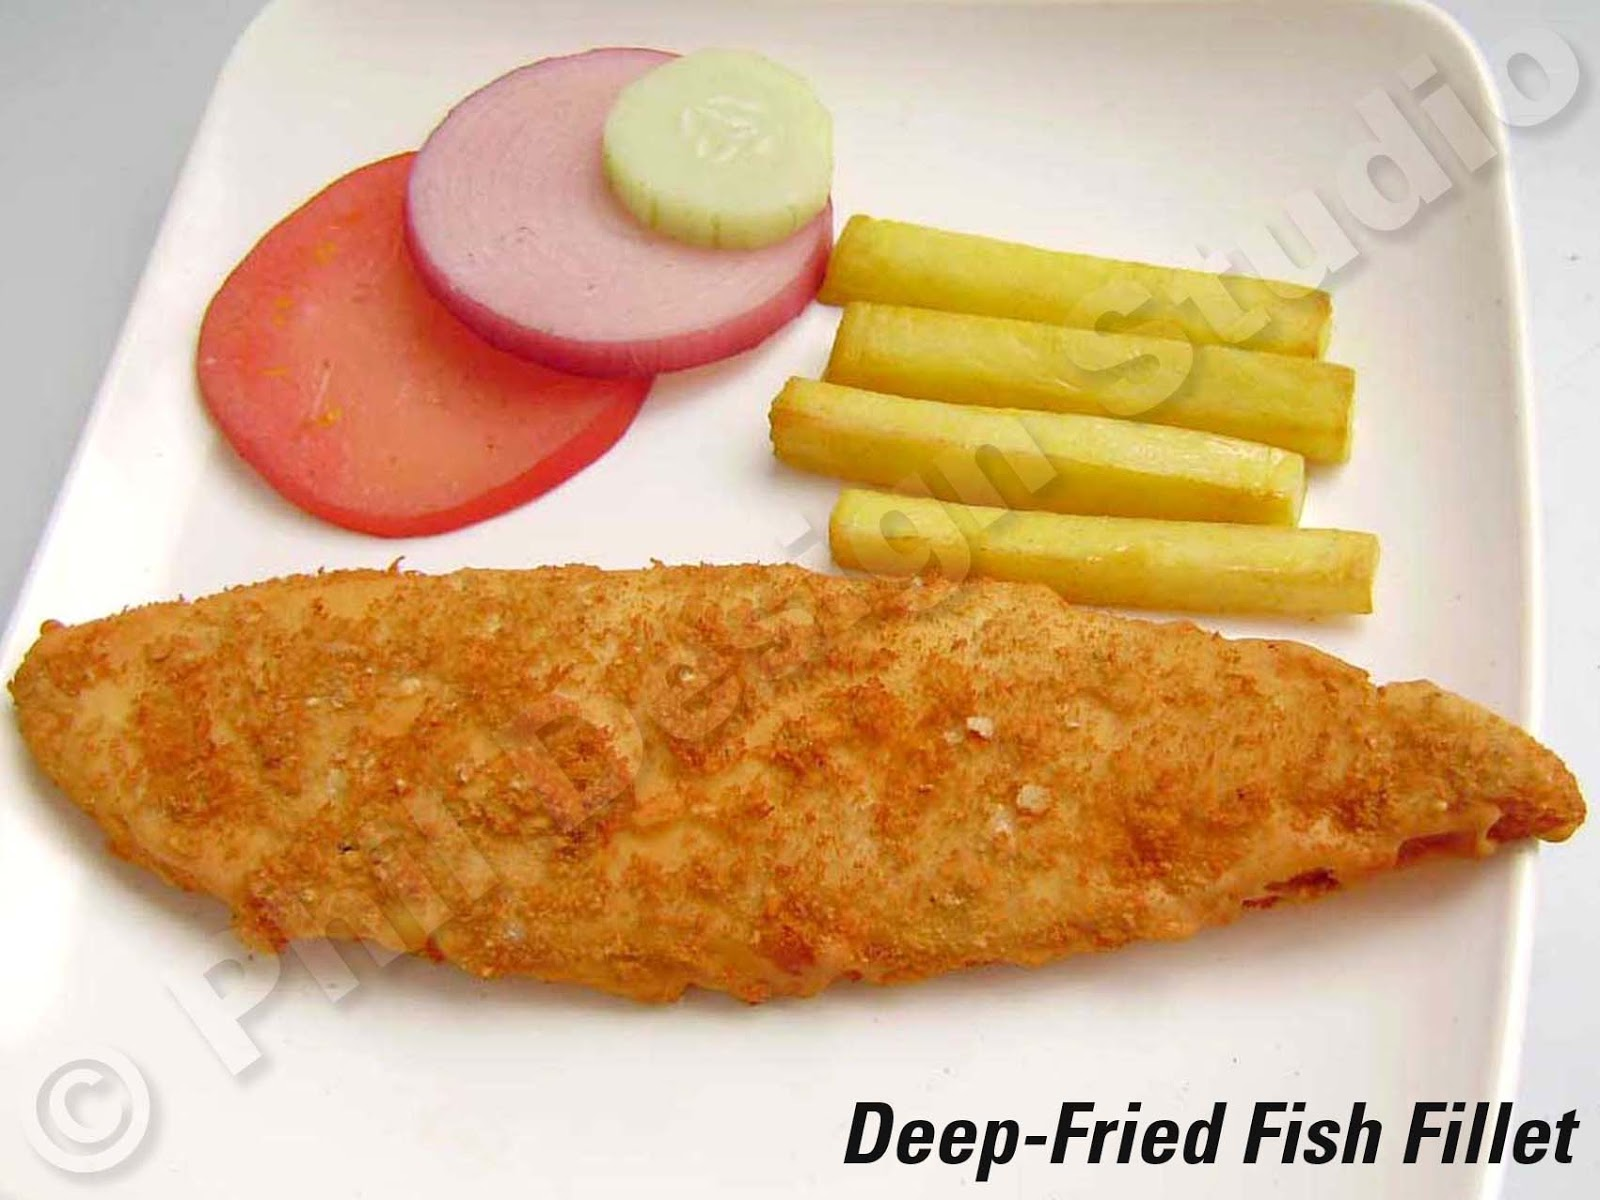 Plastic food models actual size plastic model displays for How to cook fish fillet